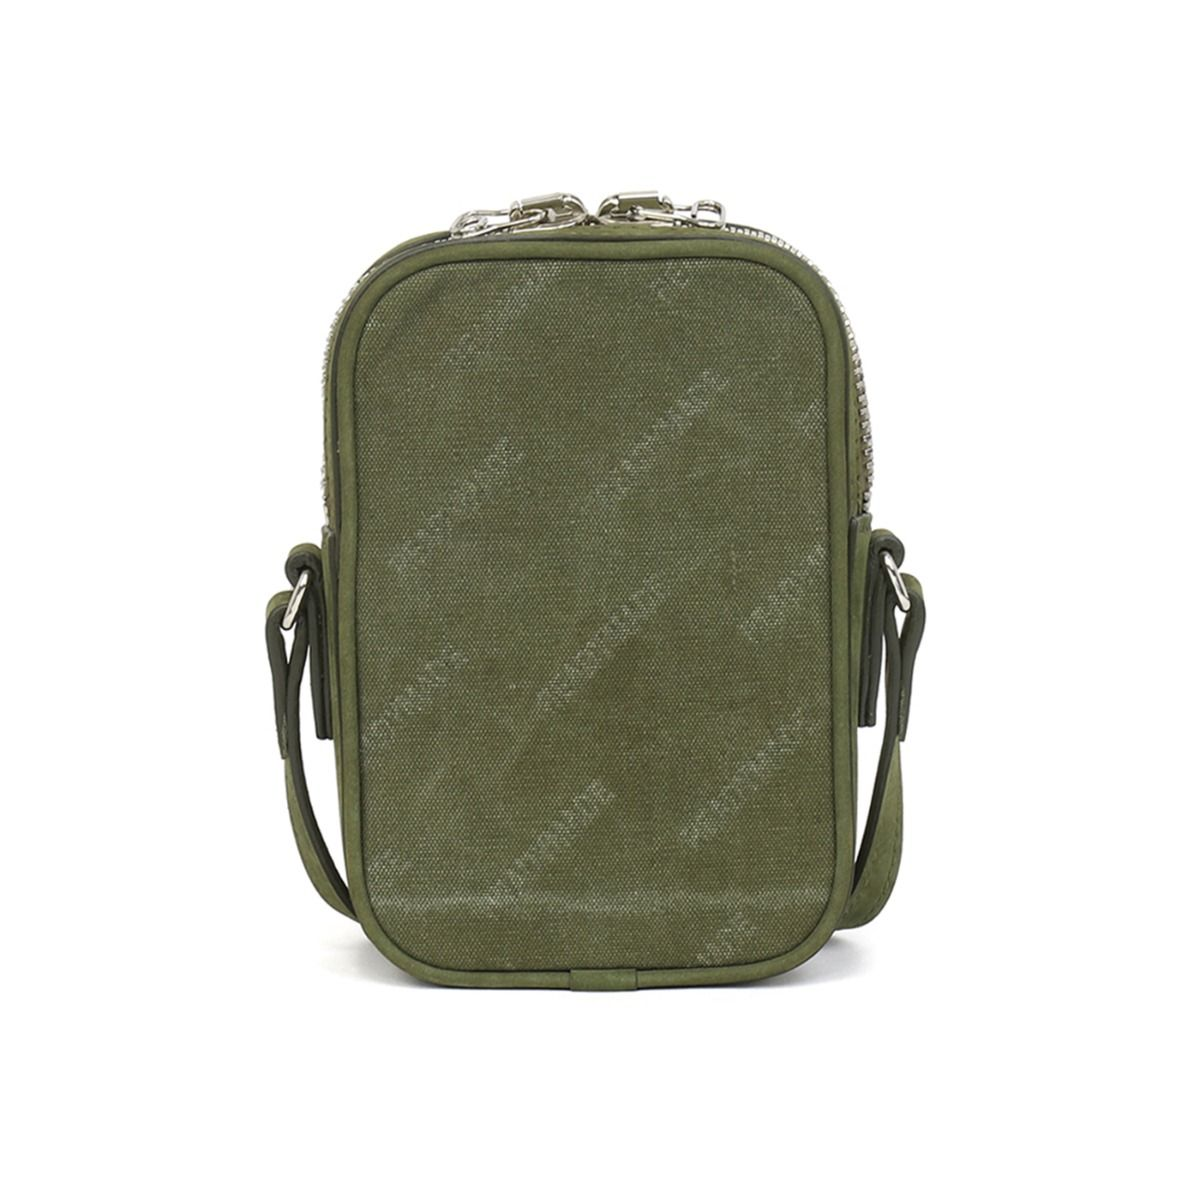 READYMADE NANO SHOULDER BAG / KHAKI